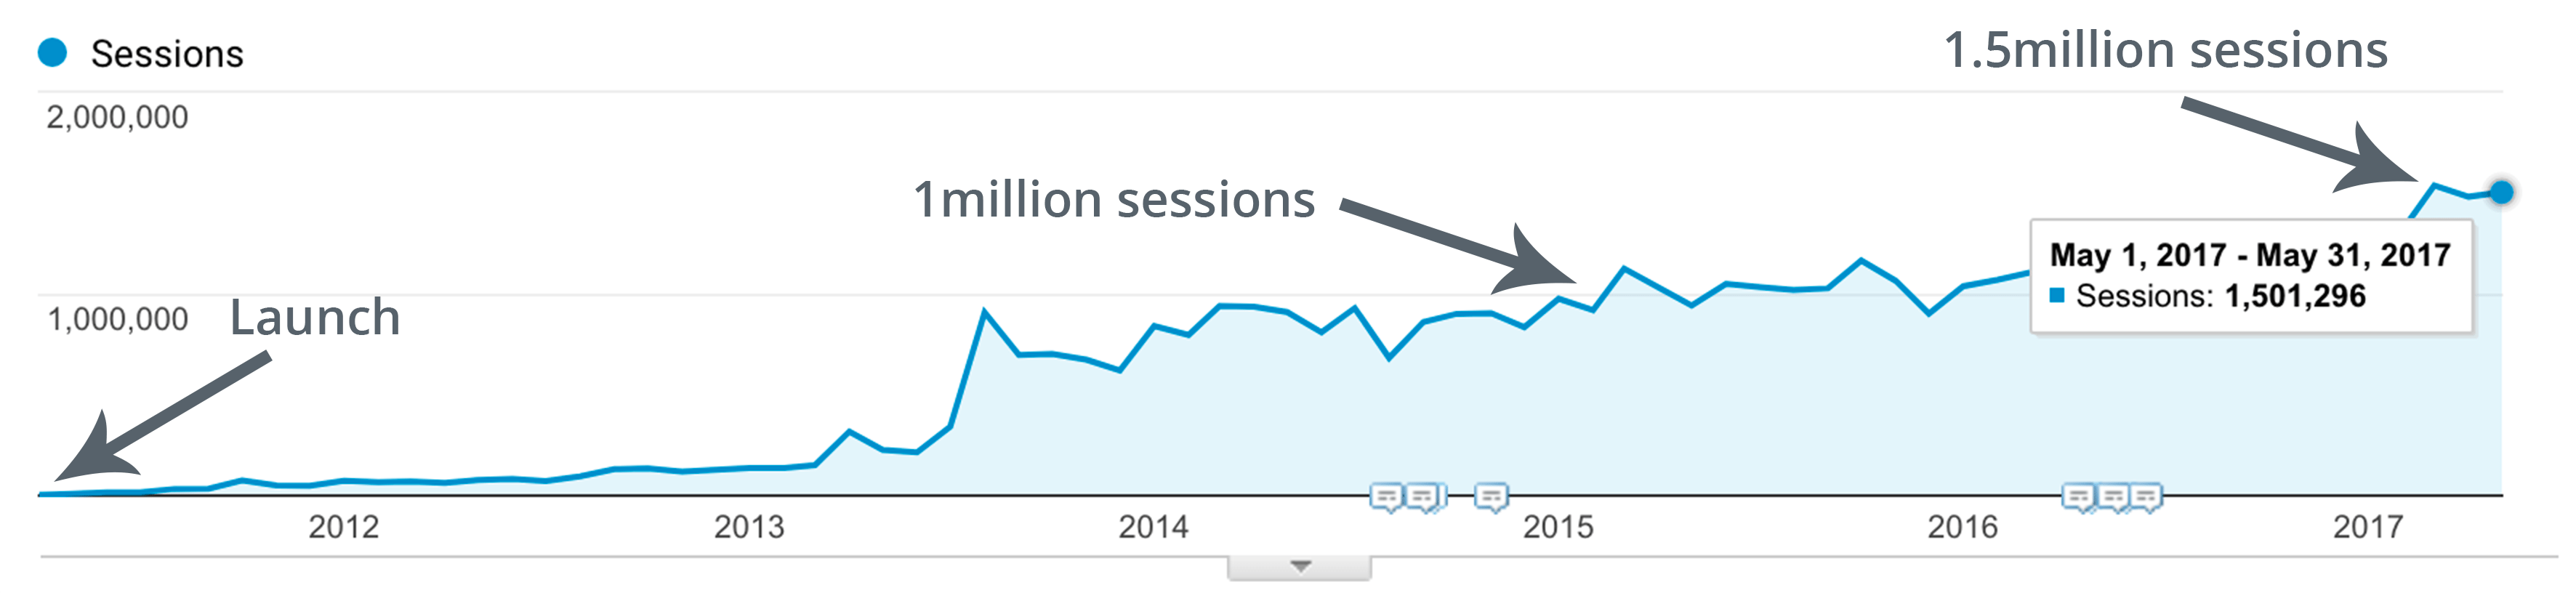 buffer content marketing strategy growth